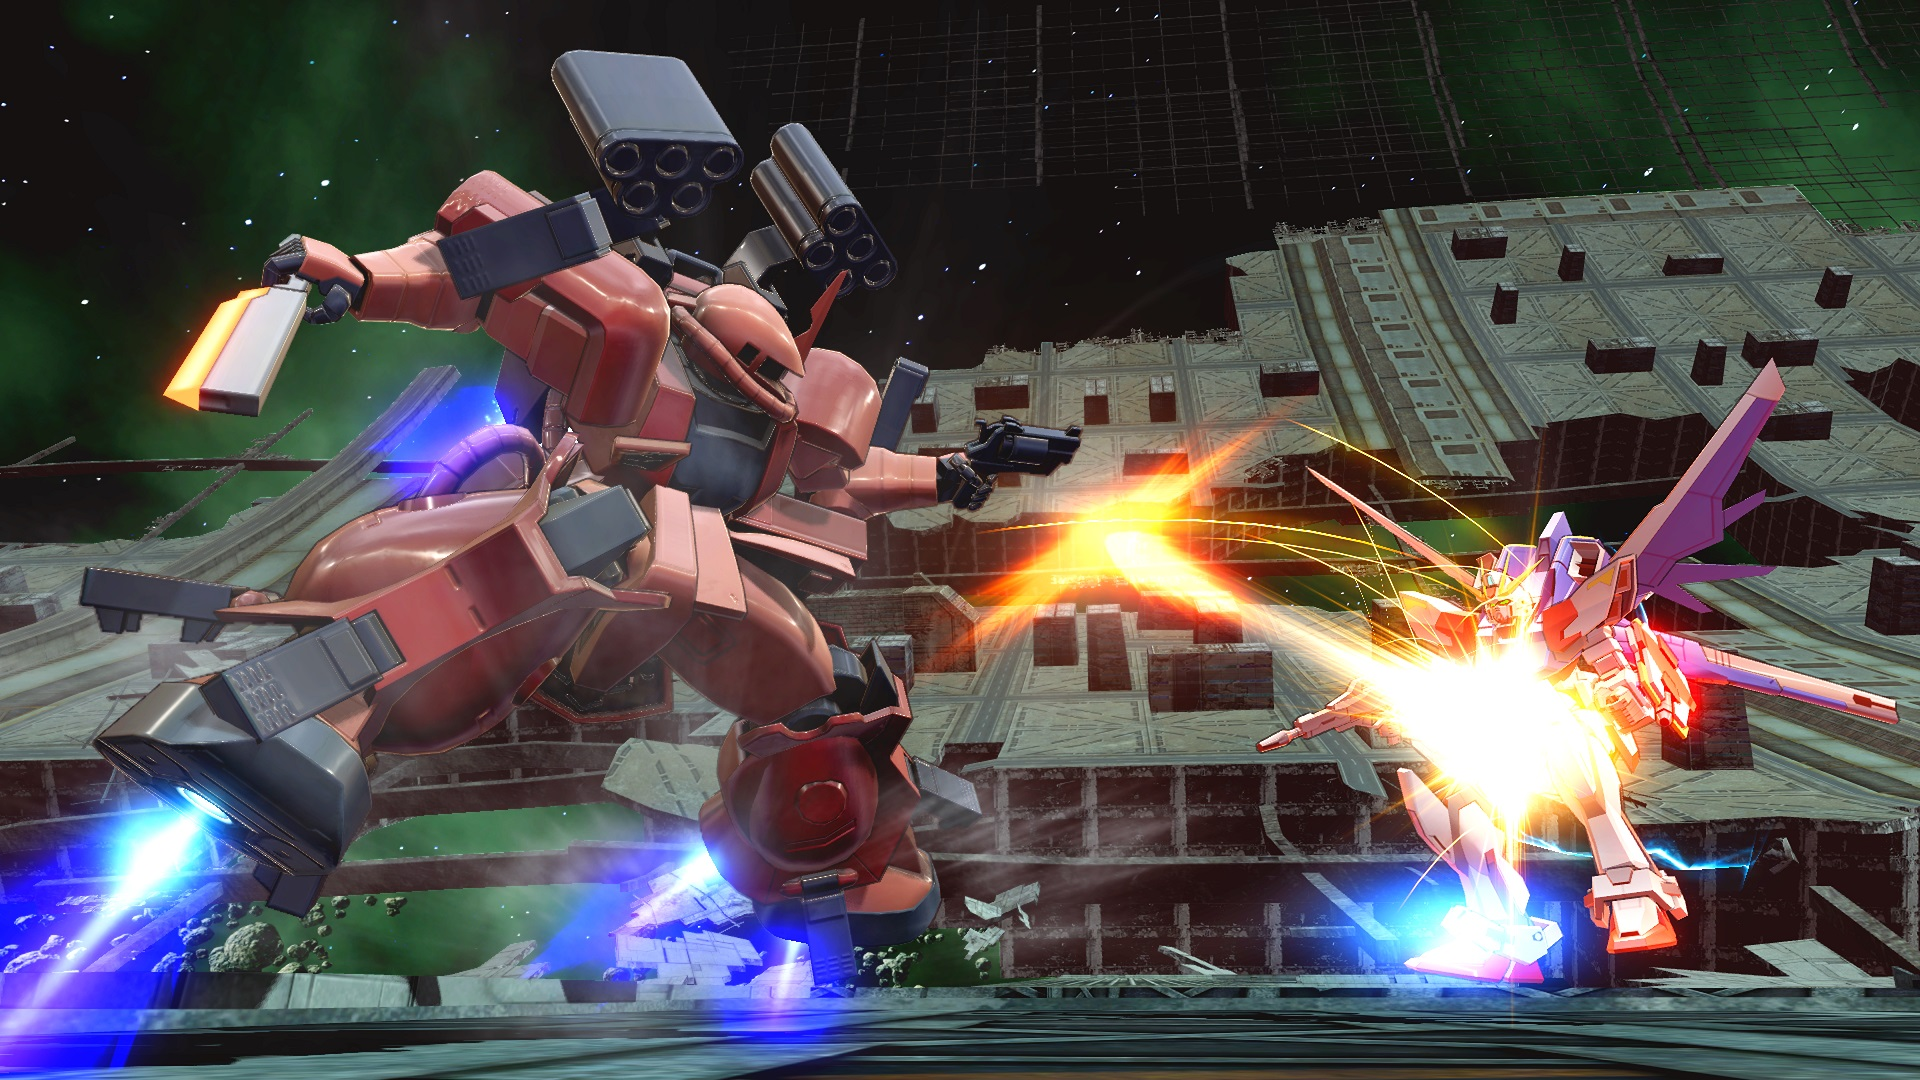 L'Open Access Beta di MOBILE SUIT GUNDAM EXTREME VS. MAXIBOOST ON inizia domani!